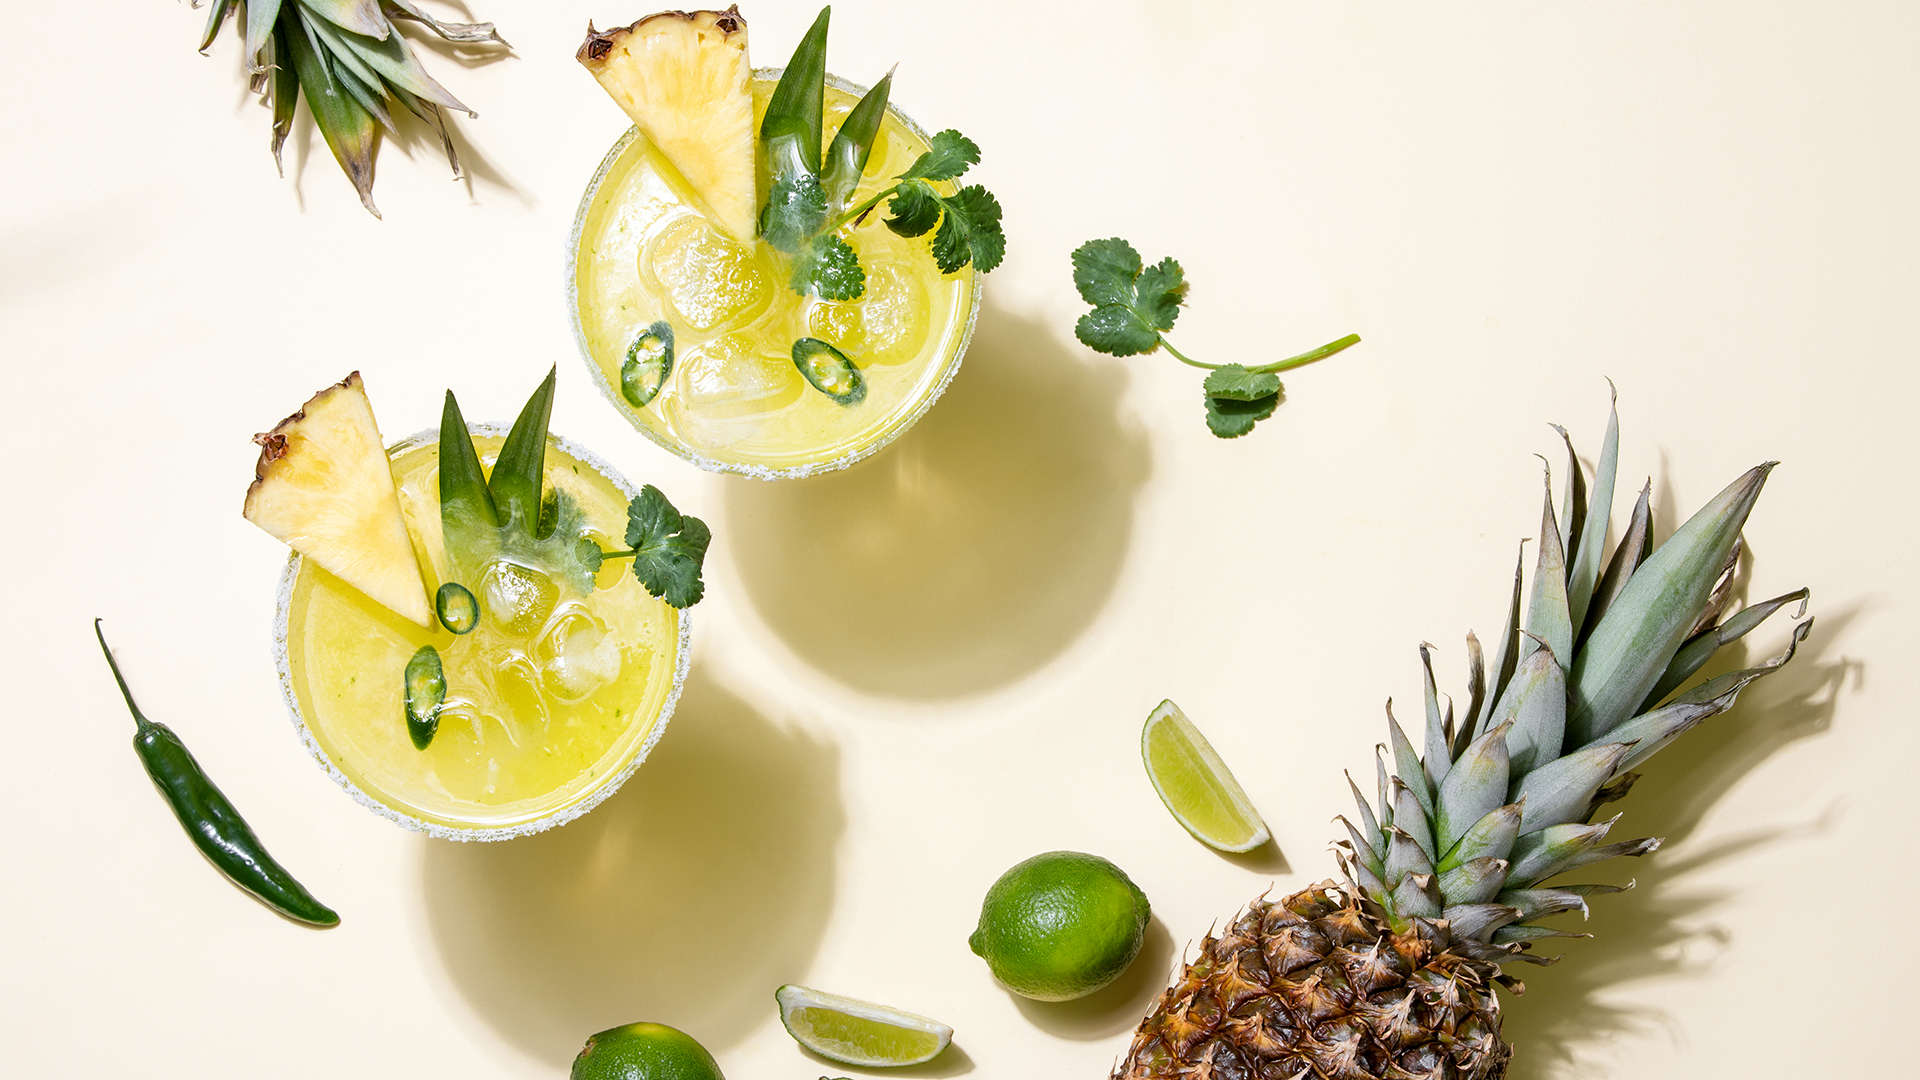 27 Margarita Recipes to Kick Off Your Weekend Plans a Little Early